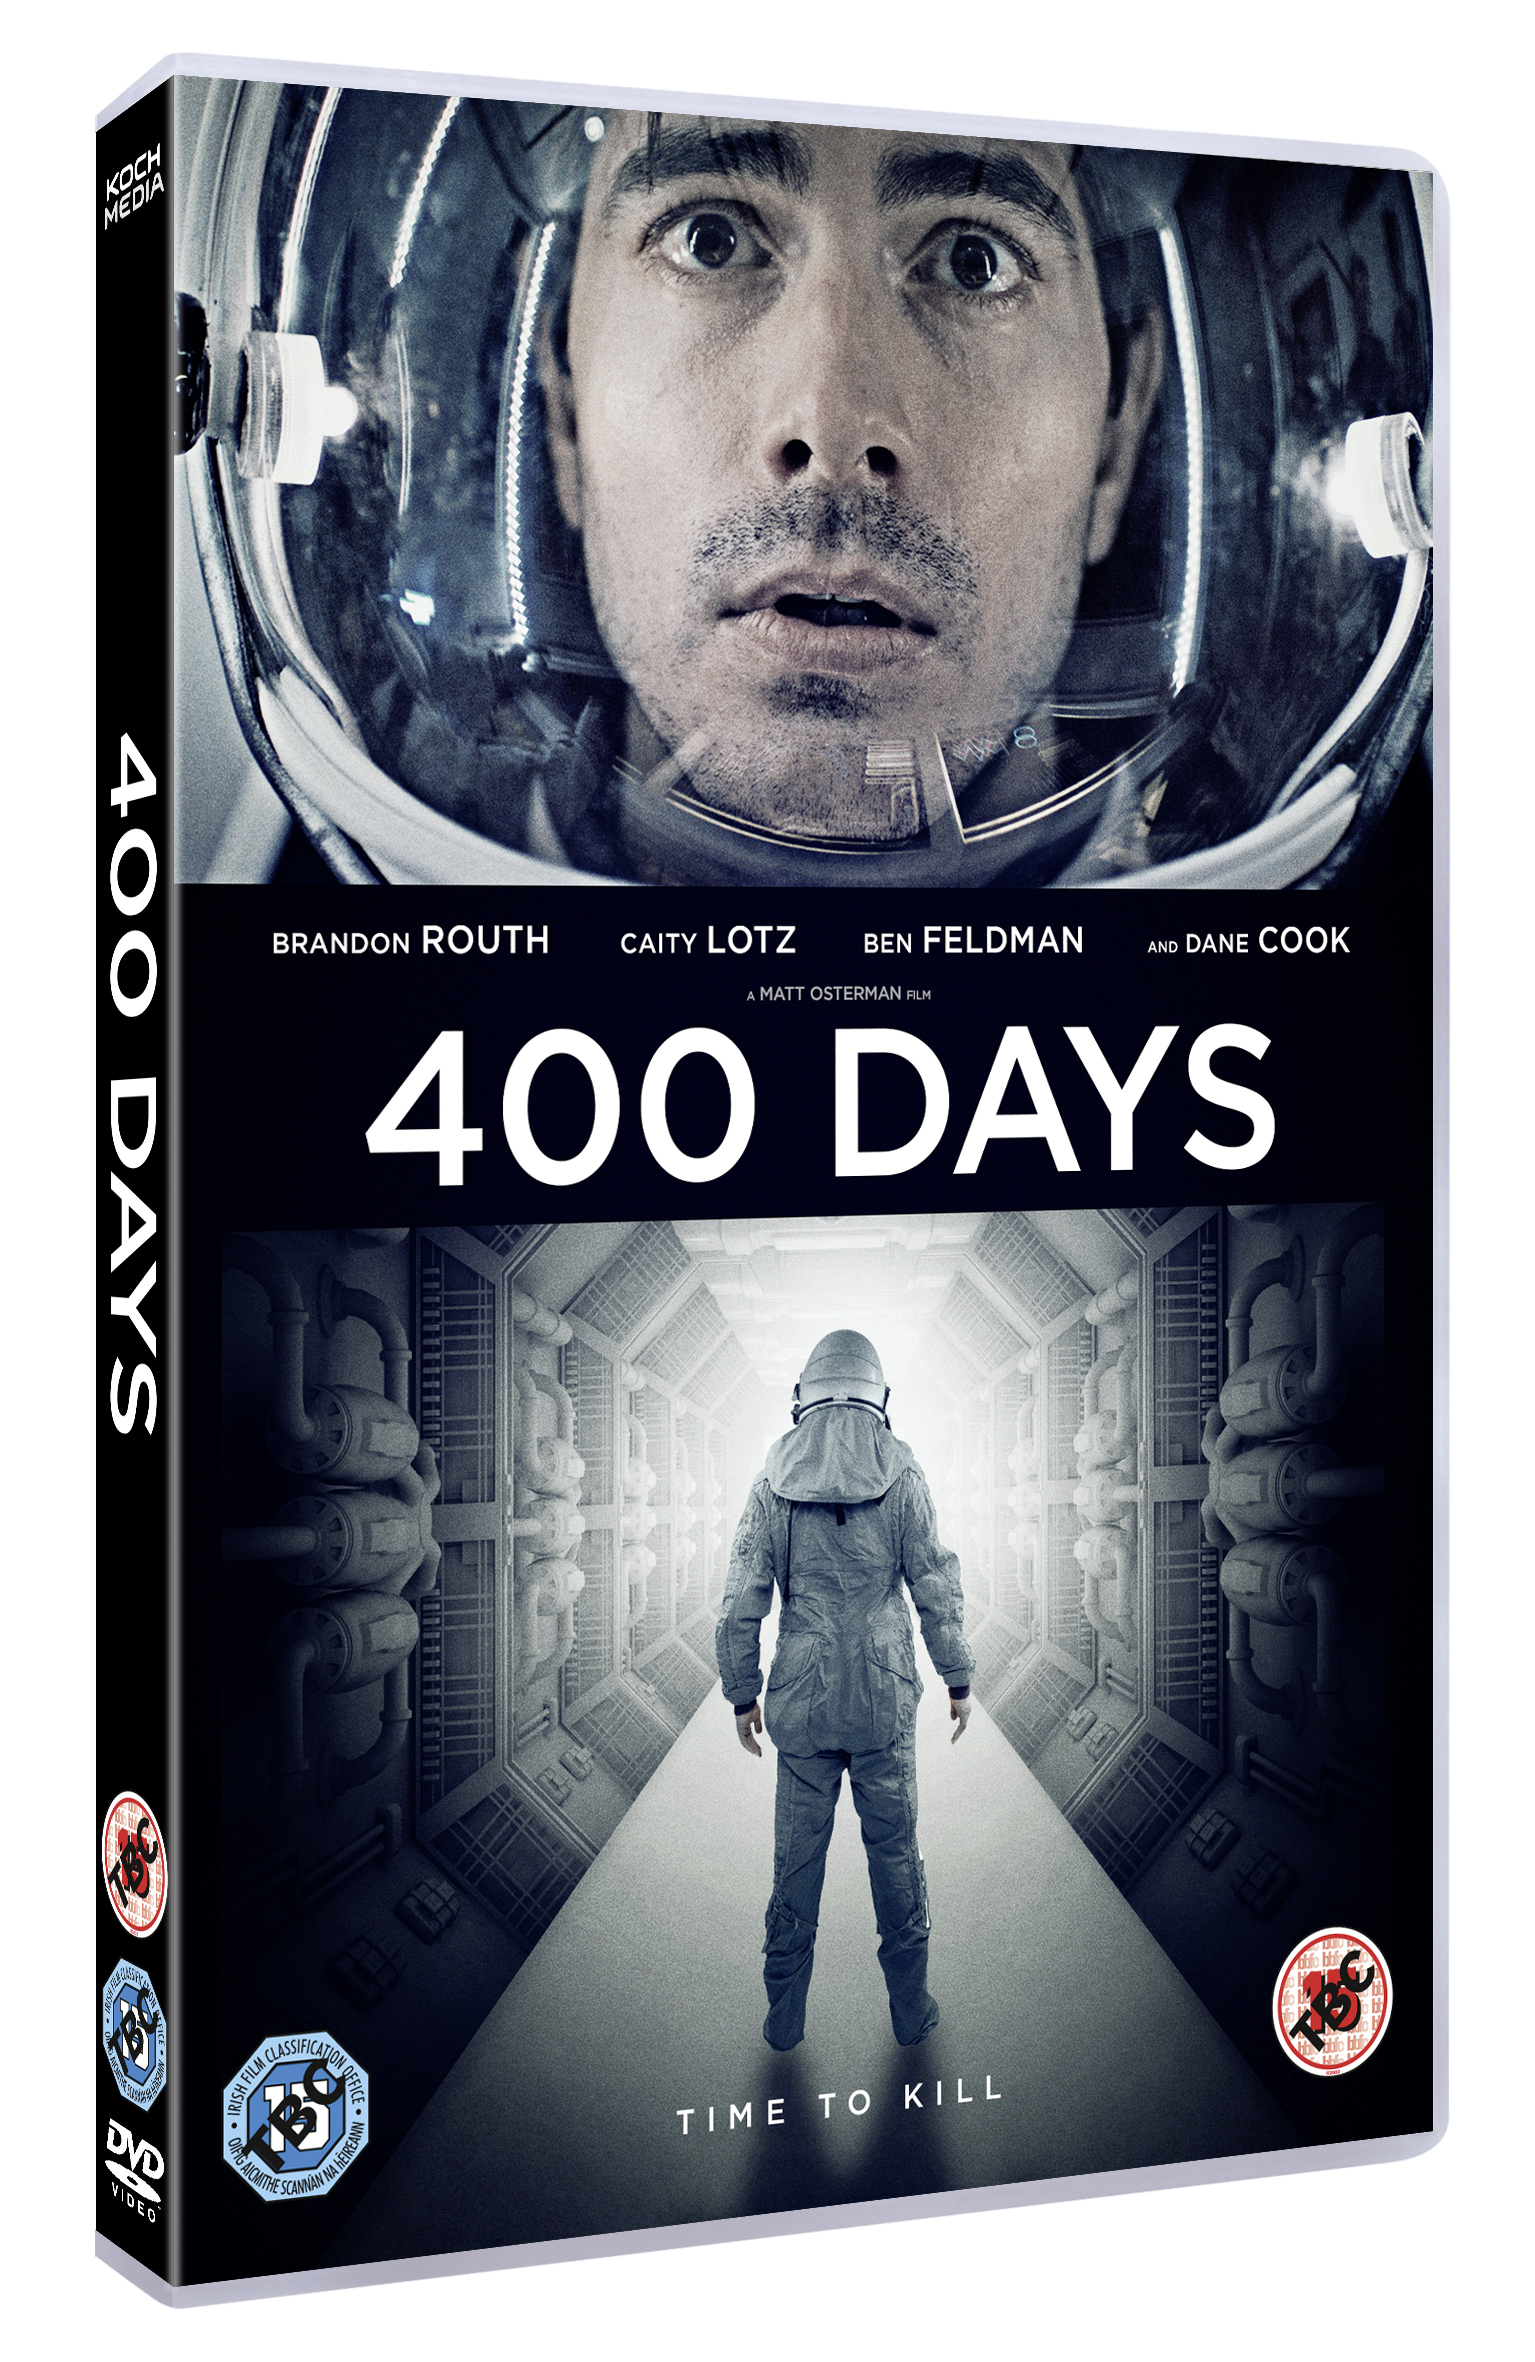 400 Days film review: space terrors